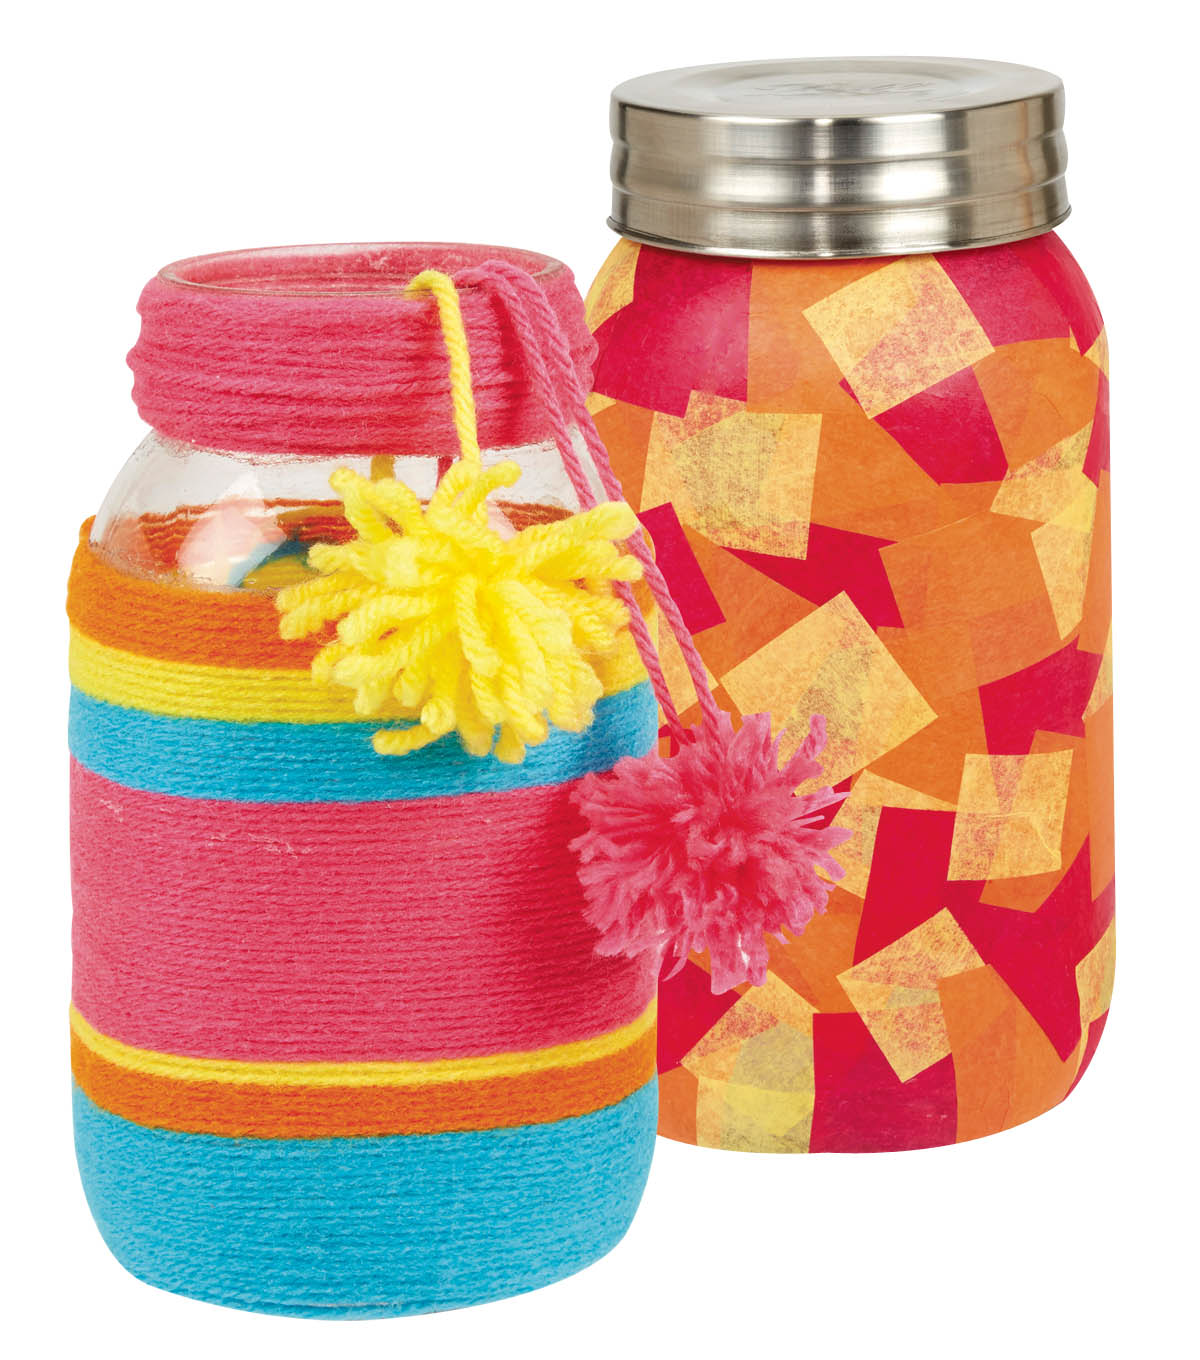 Decoupage Tissue Paper Jar and Yarn Wrapped Jar